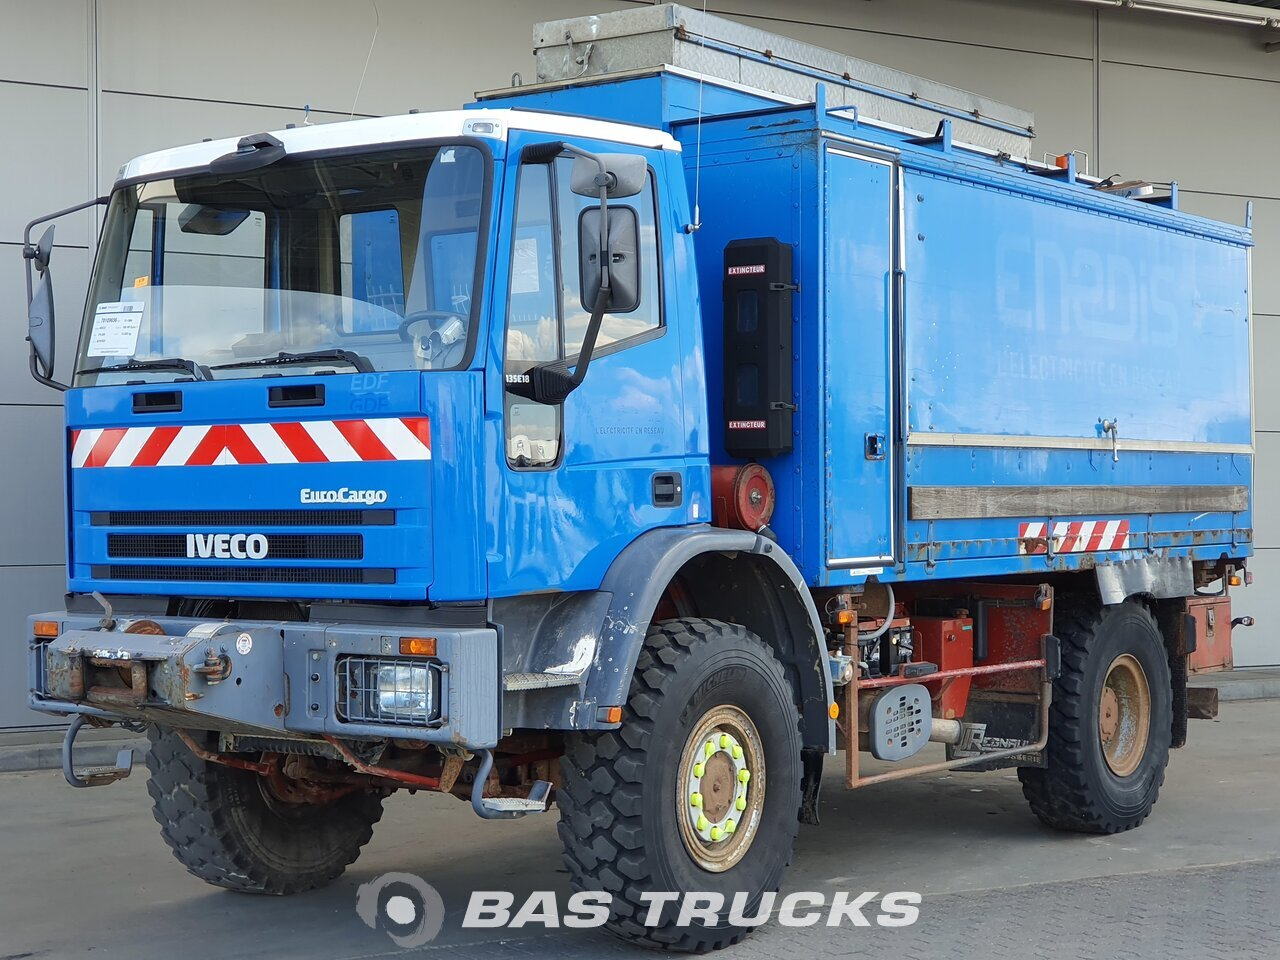 For sale at BAS Trucks: IVECO Eurocargo 135E18 4X4 12/1996